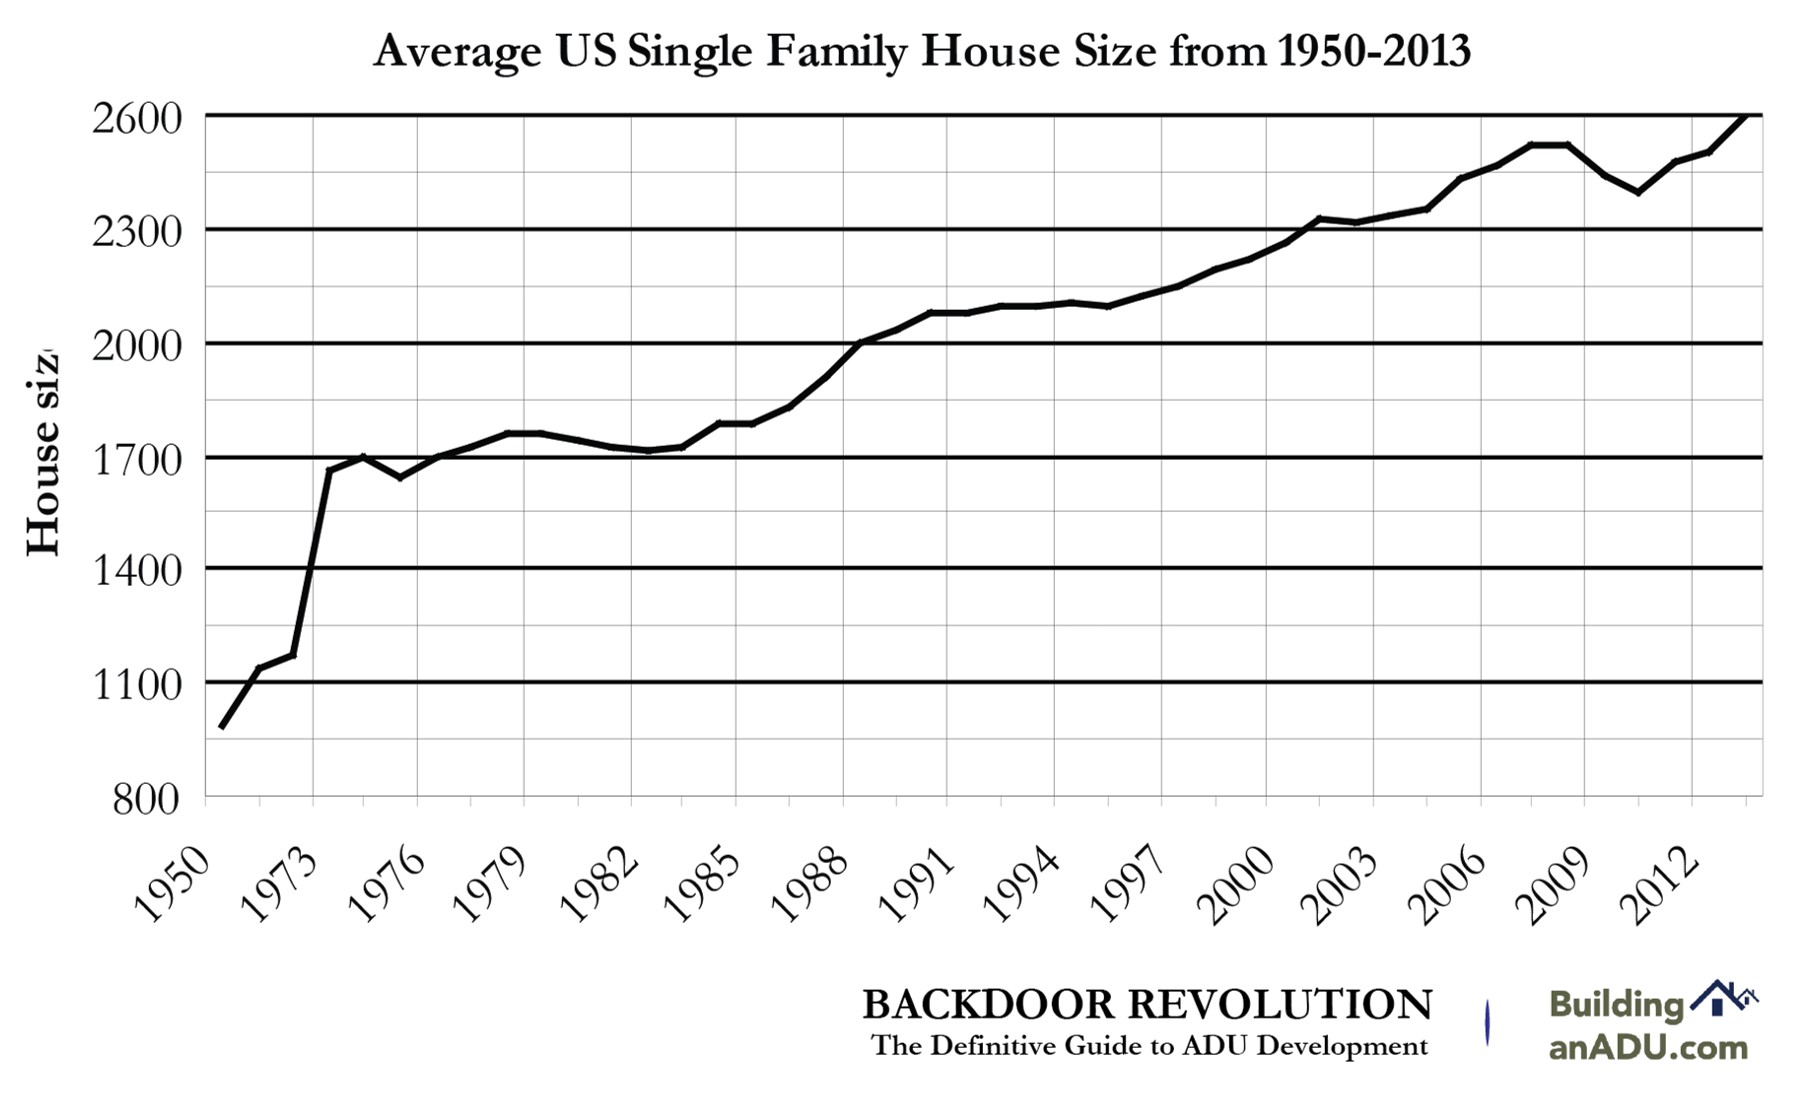 Single family home sizes in the US have increased dramatically since 1950.